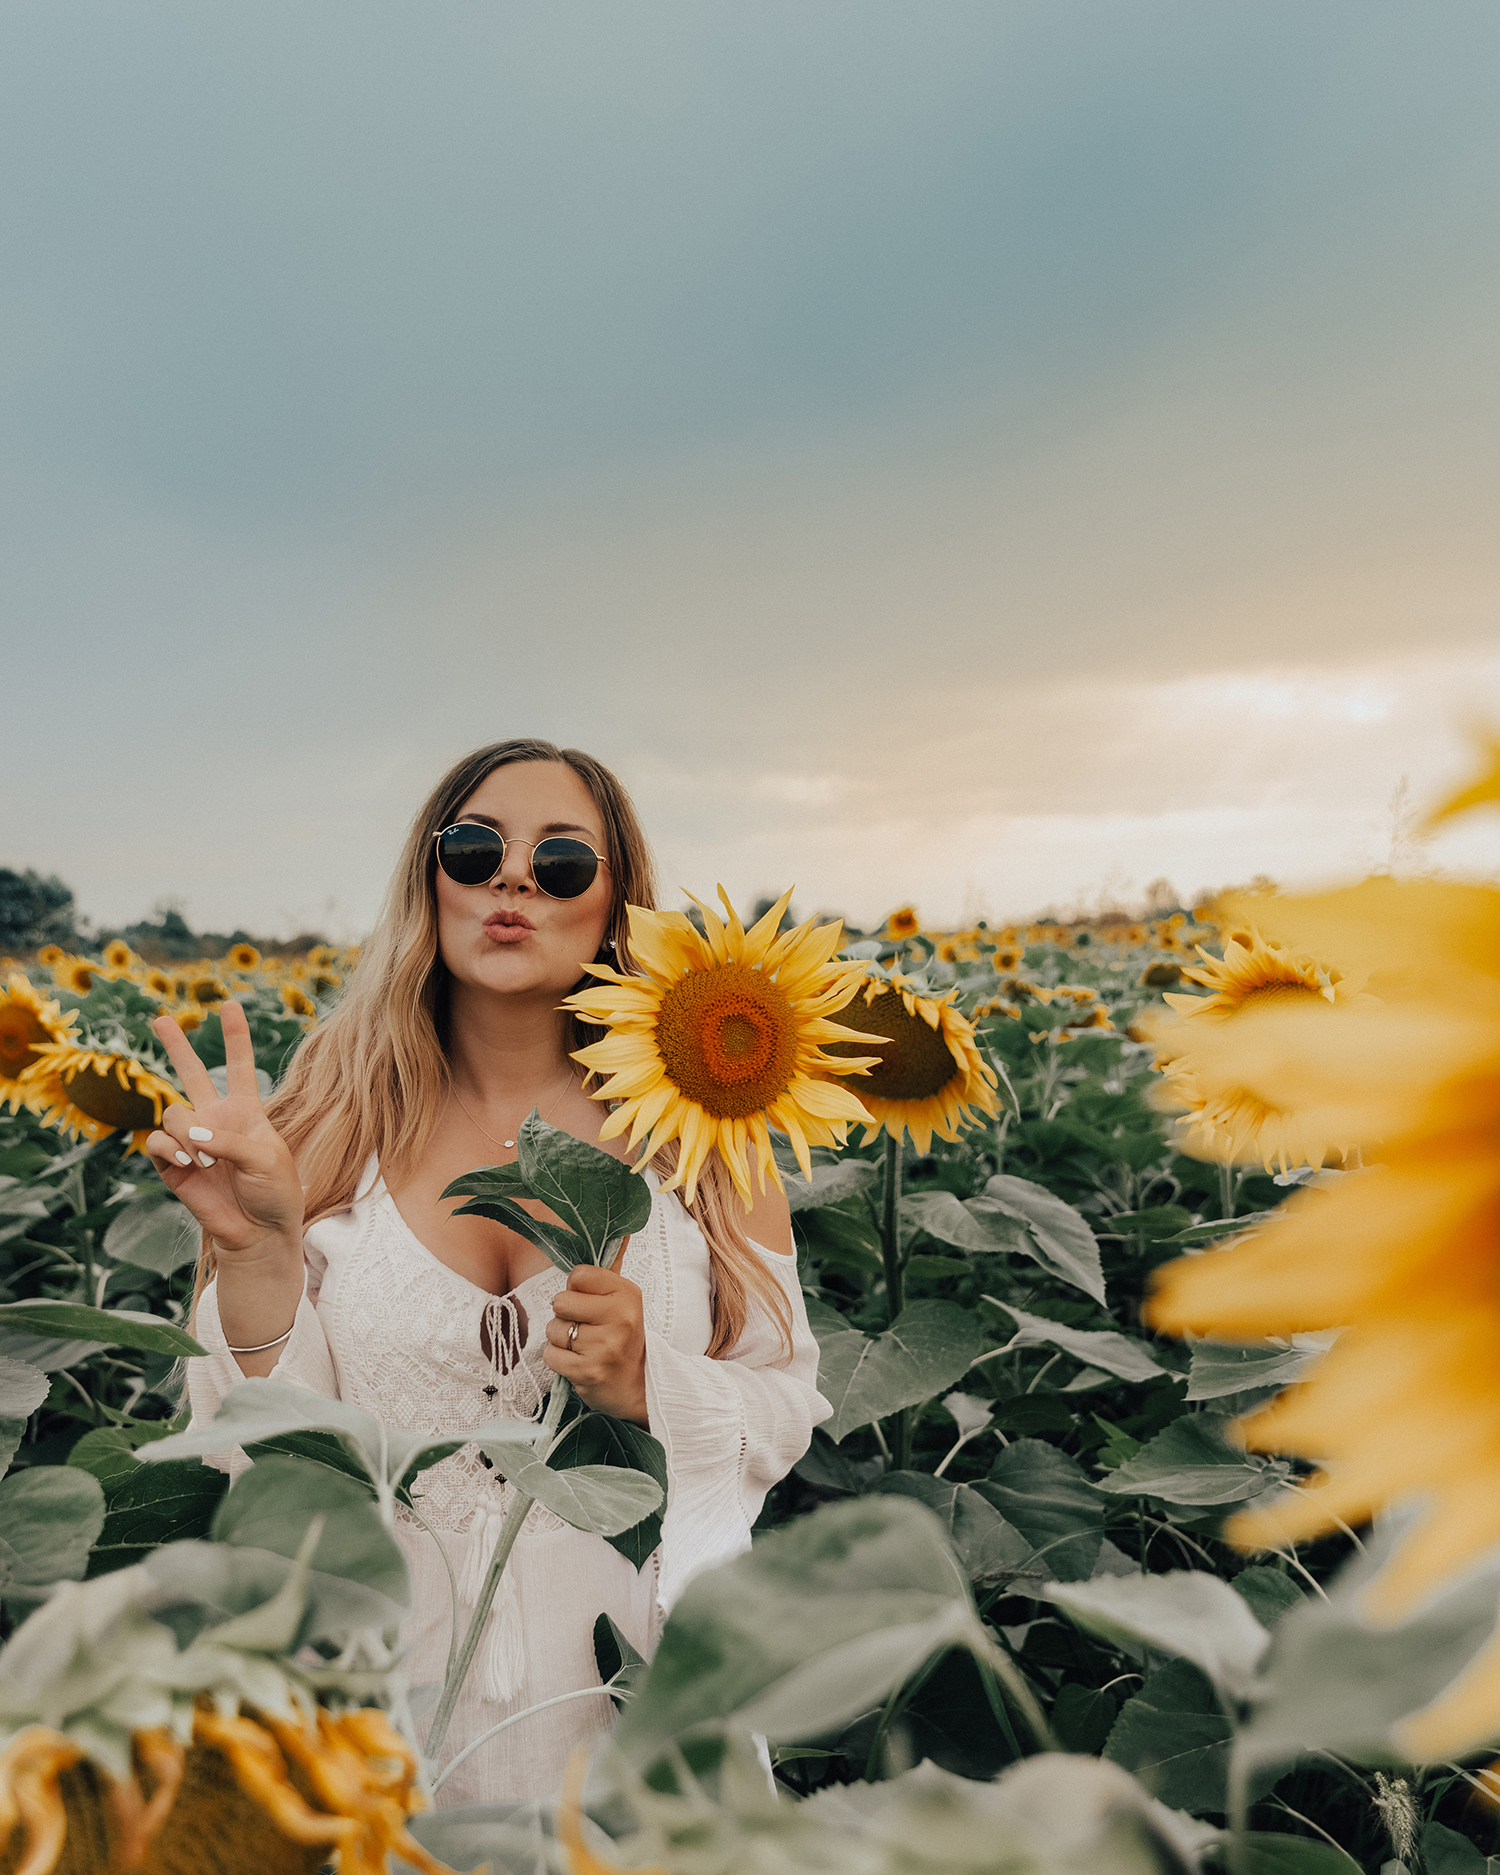 Things to Do in Slavonia, Croatia |Take Photos in Sunflower Fields